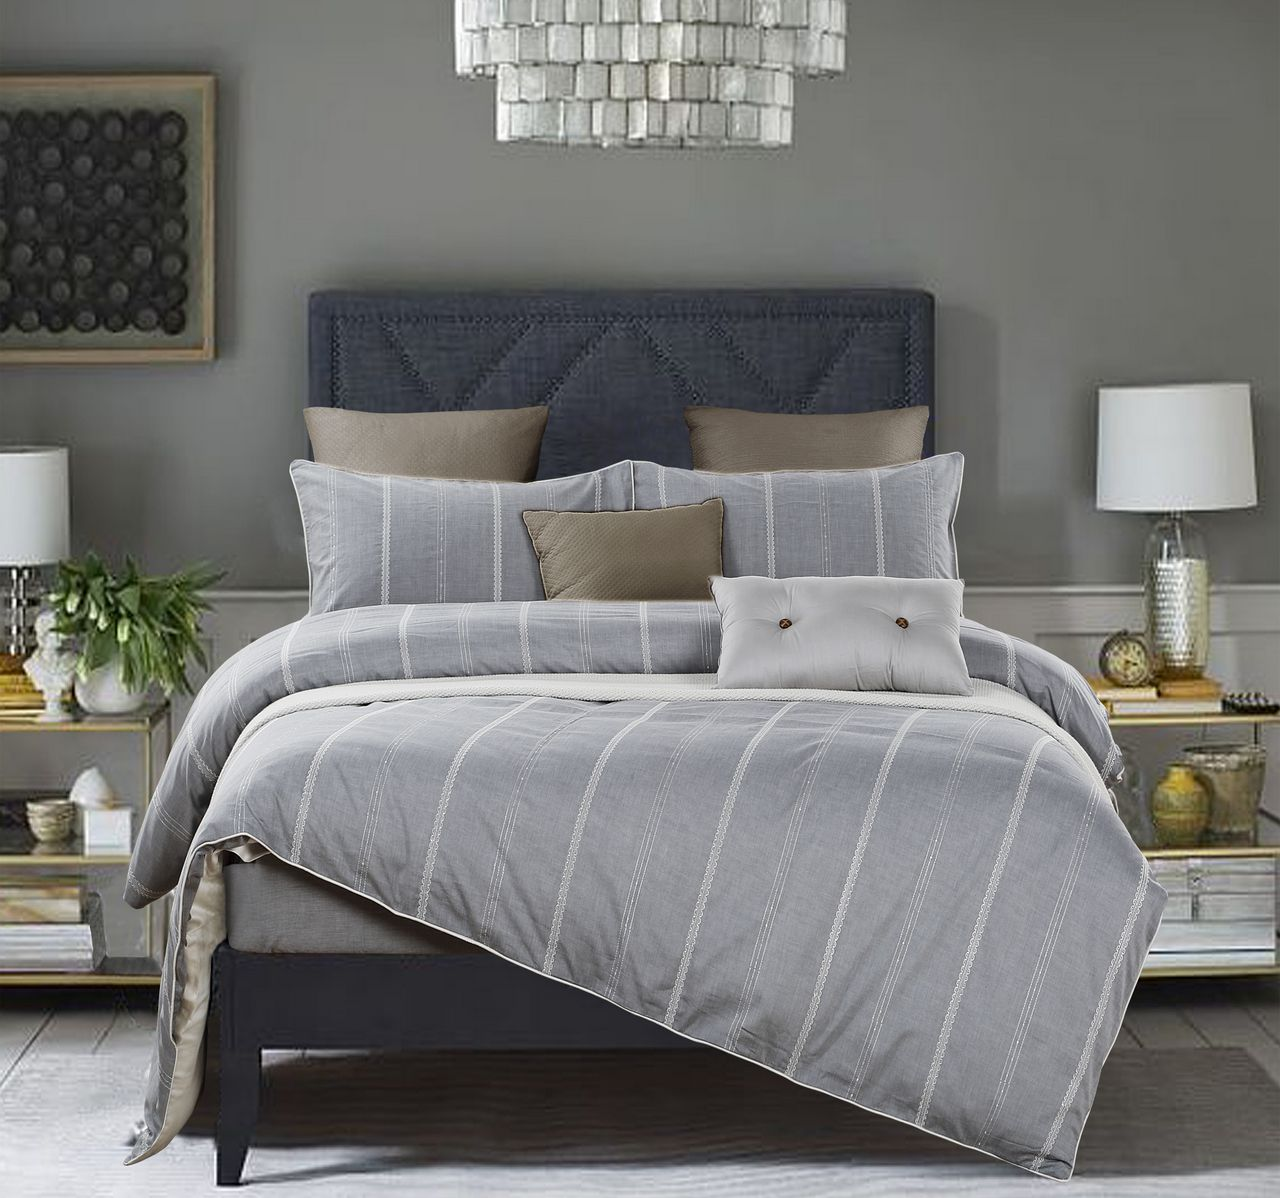 austen marisota cover product duvet grey shop action pleated details border set show